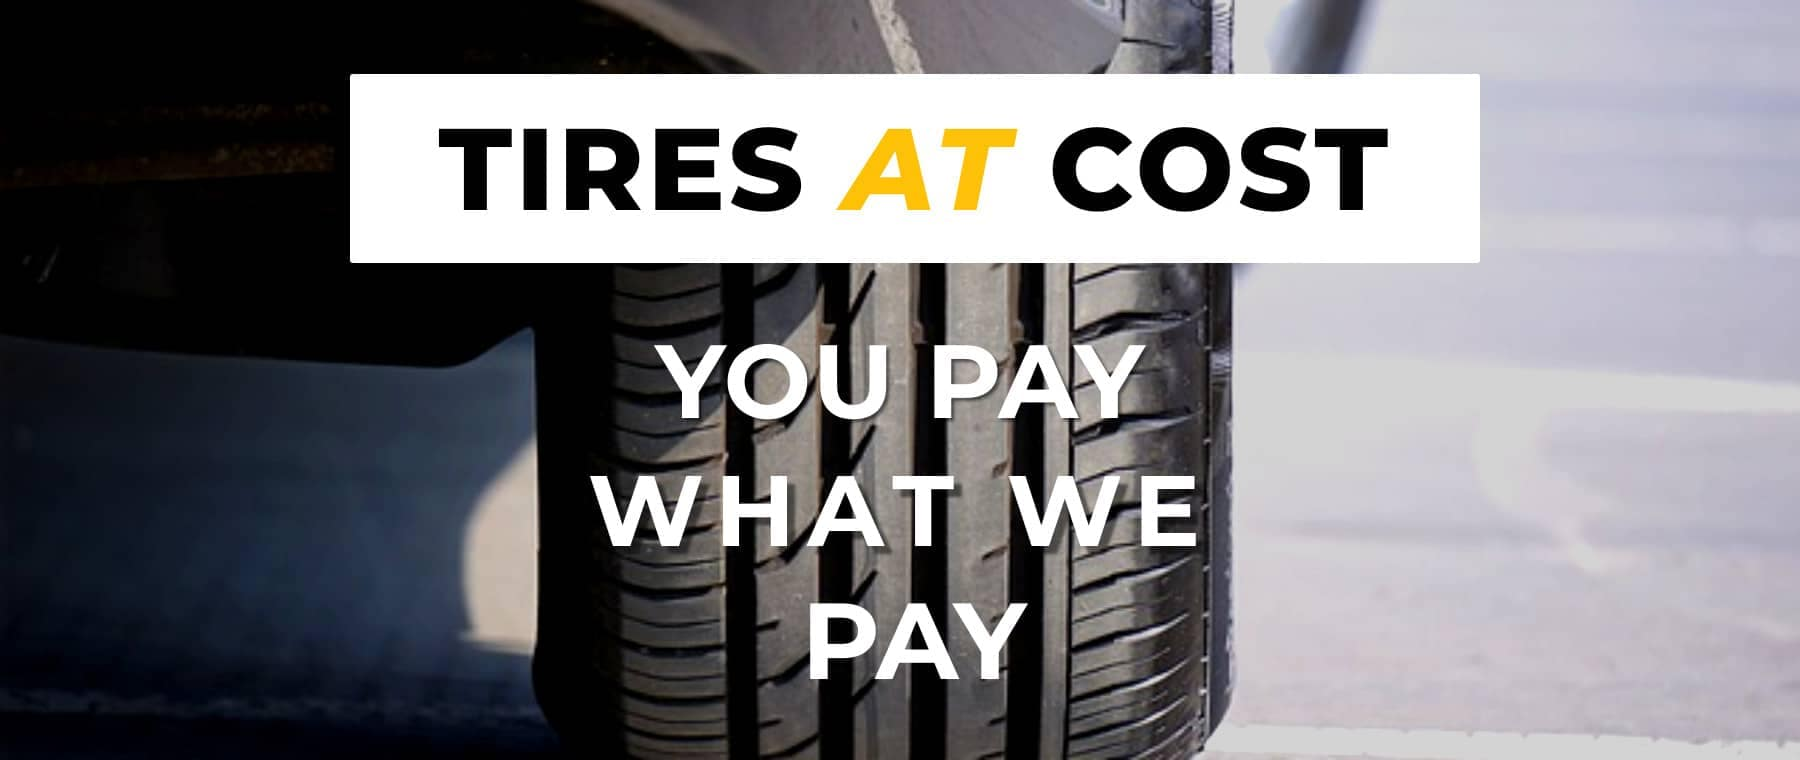 banner for tires at cost